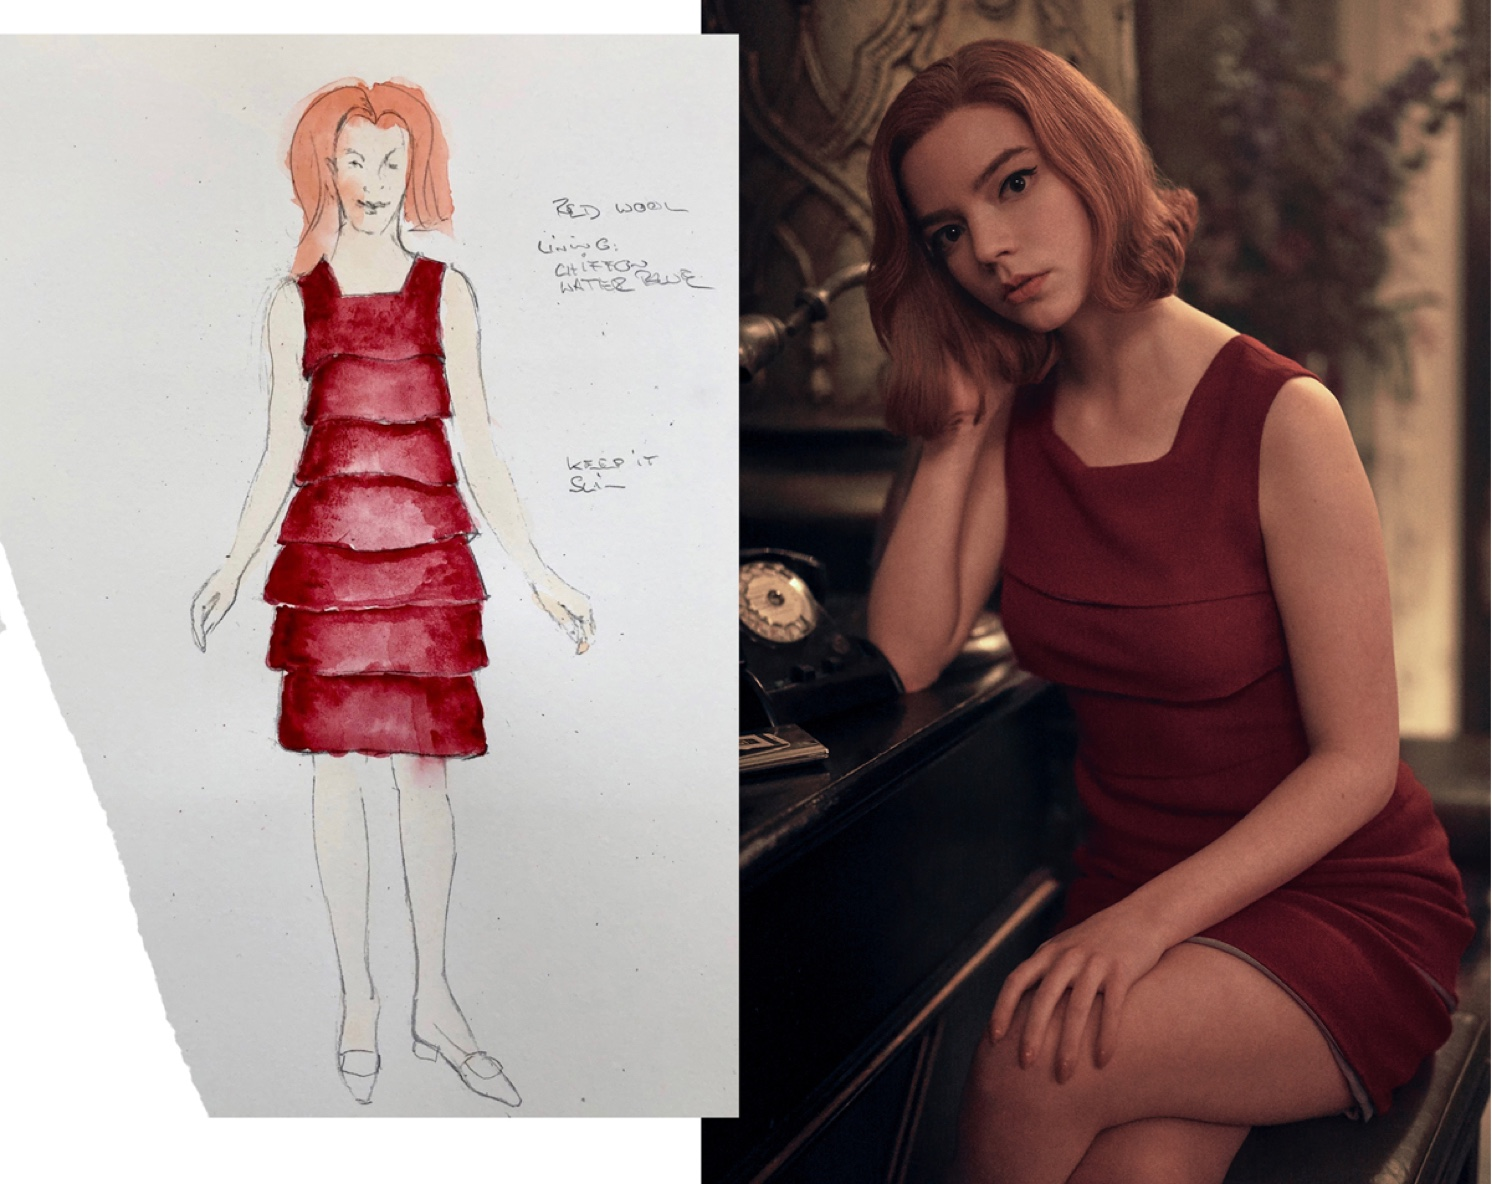 Beth cuts a stylish figure in a crimson crepe dress. A still from the series is matched with its corresponding costume sketch, the red of the dress and of Beth's hair jumping off the page.